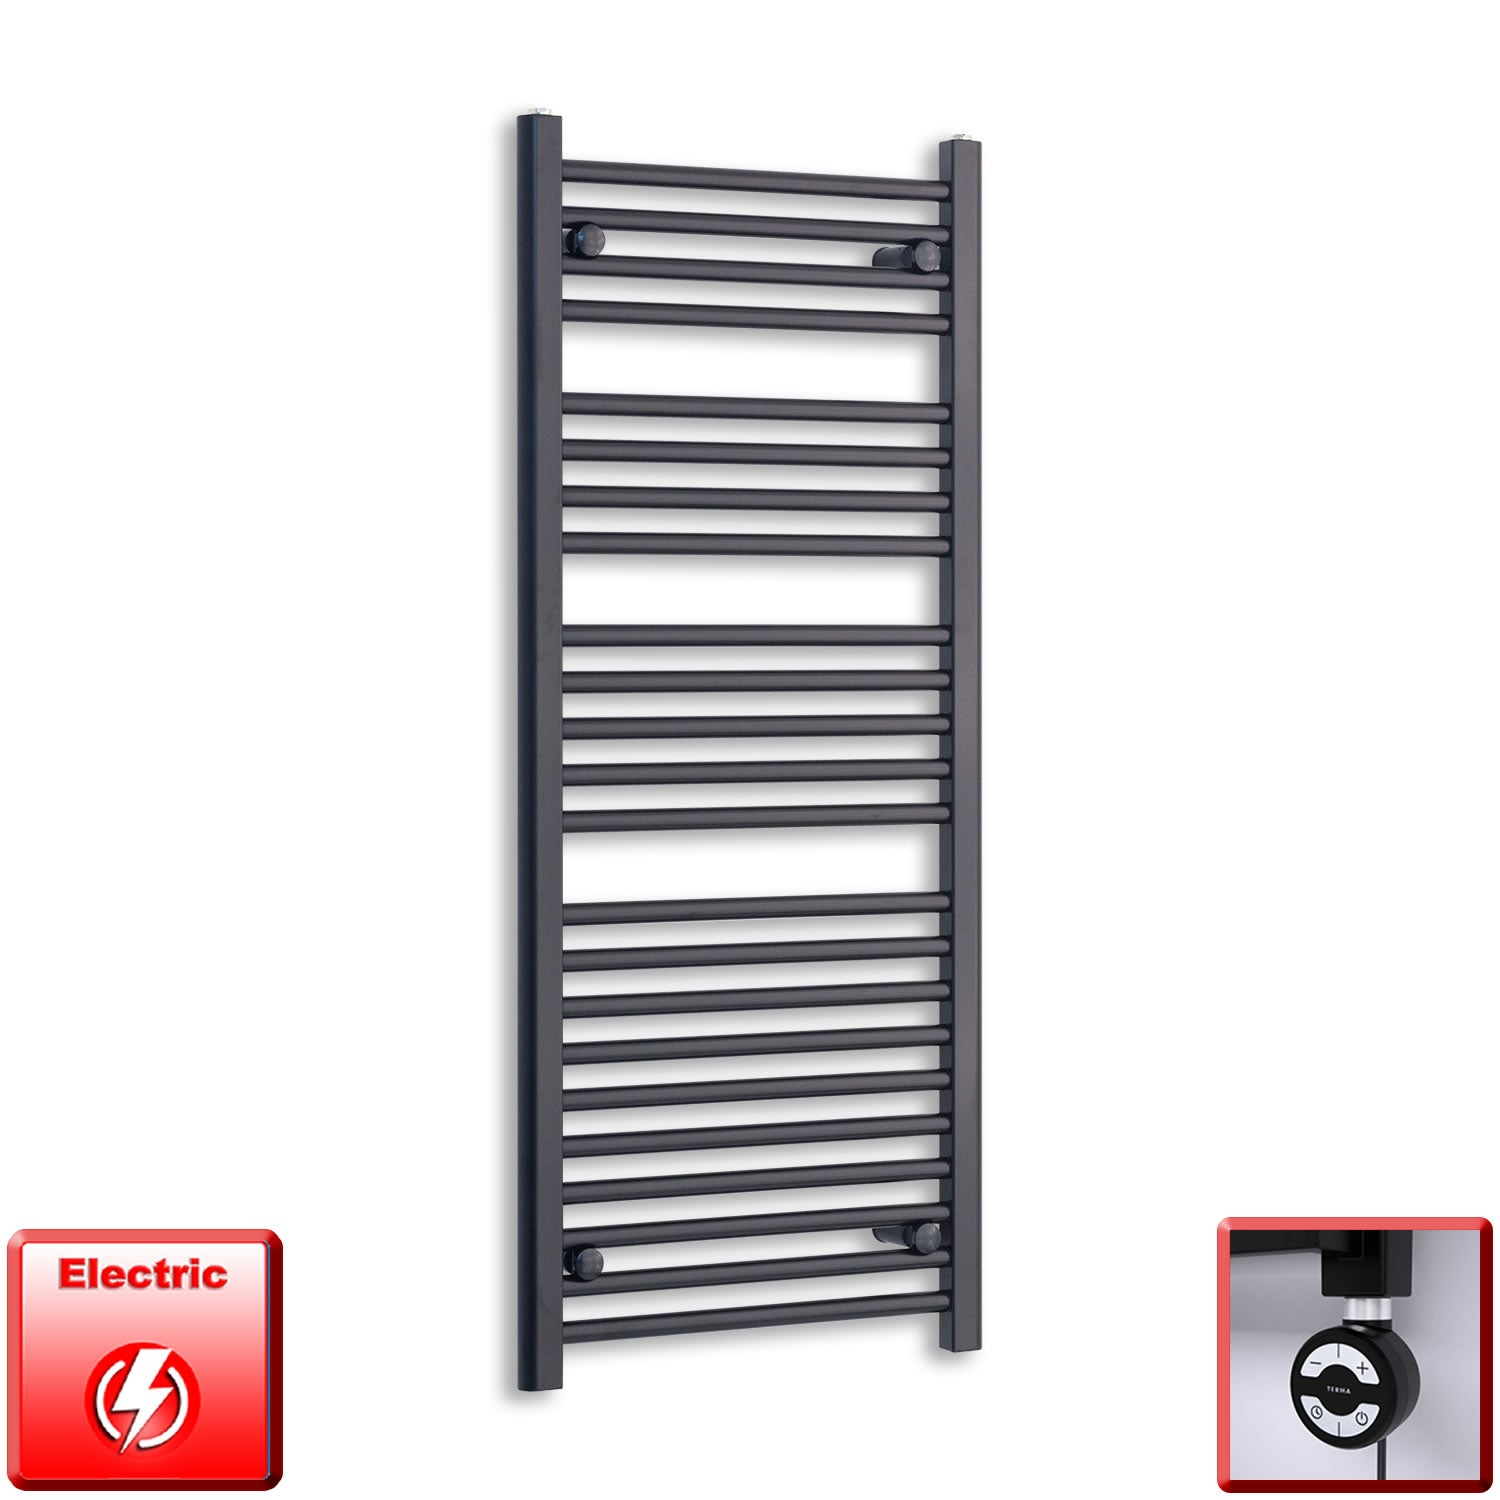 450mm Wide 1200mm High Flat Black Pre-Filled Electric Heated Towel Rail Radiator HTR,MOA Thermostatic Element